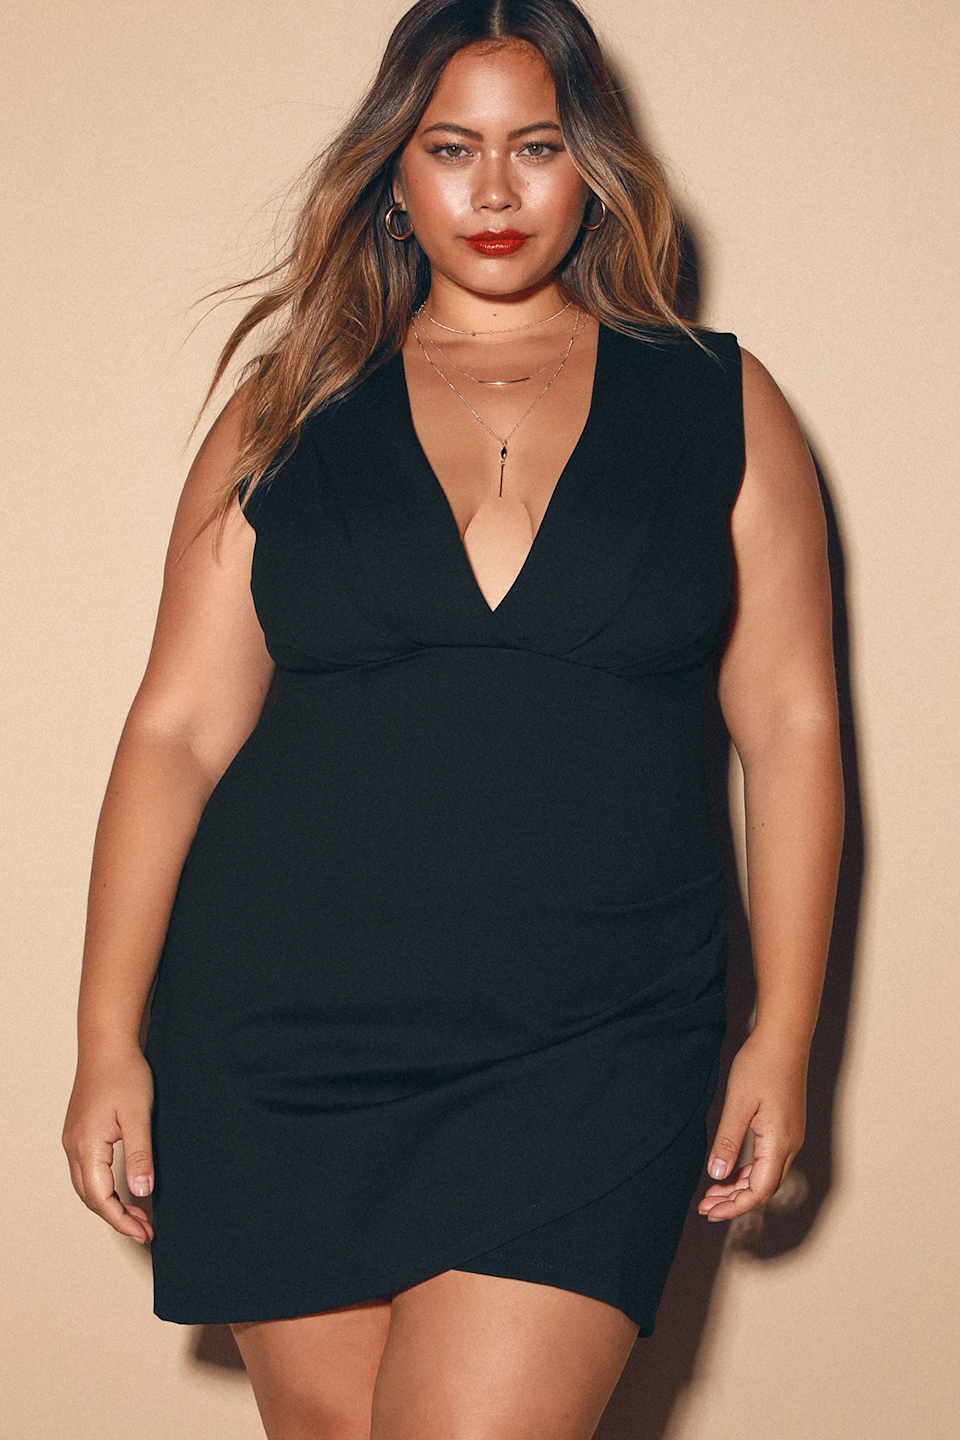 """<h2>Lulus Cocktail Hour Black Wrap Dress </h2><br><strong><h3>Best Plus-Size Cocktail Hour Dress</h3></strong><br><strong>Sizes Available: XXS-3X</strong><br>This dress is made in a faux-wrap design, which gives you all the style benefits of a wrap silhouette without the overcomplication of making sure it's securely tied.<br><br>""""Love this dress! The material is thick and stretchy. Holds everything in without showing the lumps & bumps. 10 /10."""" <em>– Sara W., Size 1X</em><br><br><em>Shop <strong><a href=""""https://www.lulus.com/products/cocktail-hour-black-wrap-dress/293322.html"""" rel=""""nofollow noopener"""" target=""""_blank"""" data-ylk=""""slk:Lulus"""" class=""""link rapid-noclick-resp"""">Lulus</a></strong></em><br><br><strong>Lulus</strong> Cocktail Hour Black Wrap Dress, $, available at <a href=""""https://go.skimresources.com/?id=30283X879131&url=https%3A%2F%2Fwww.lulus.com%2Fproducts%2Fcocktail-hour-black-wrap-dress%2F293322.html"""" rel=""""nofollow noopener"""" target=""""_blank"""" data-ylk=""""slk:Lulus"""" class=""""link rapid-noclick-resp"""">Lulus</a>"""